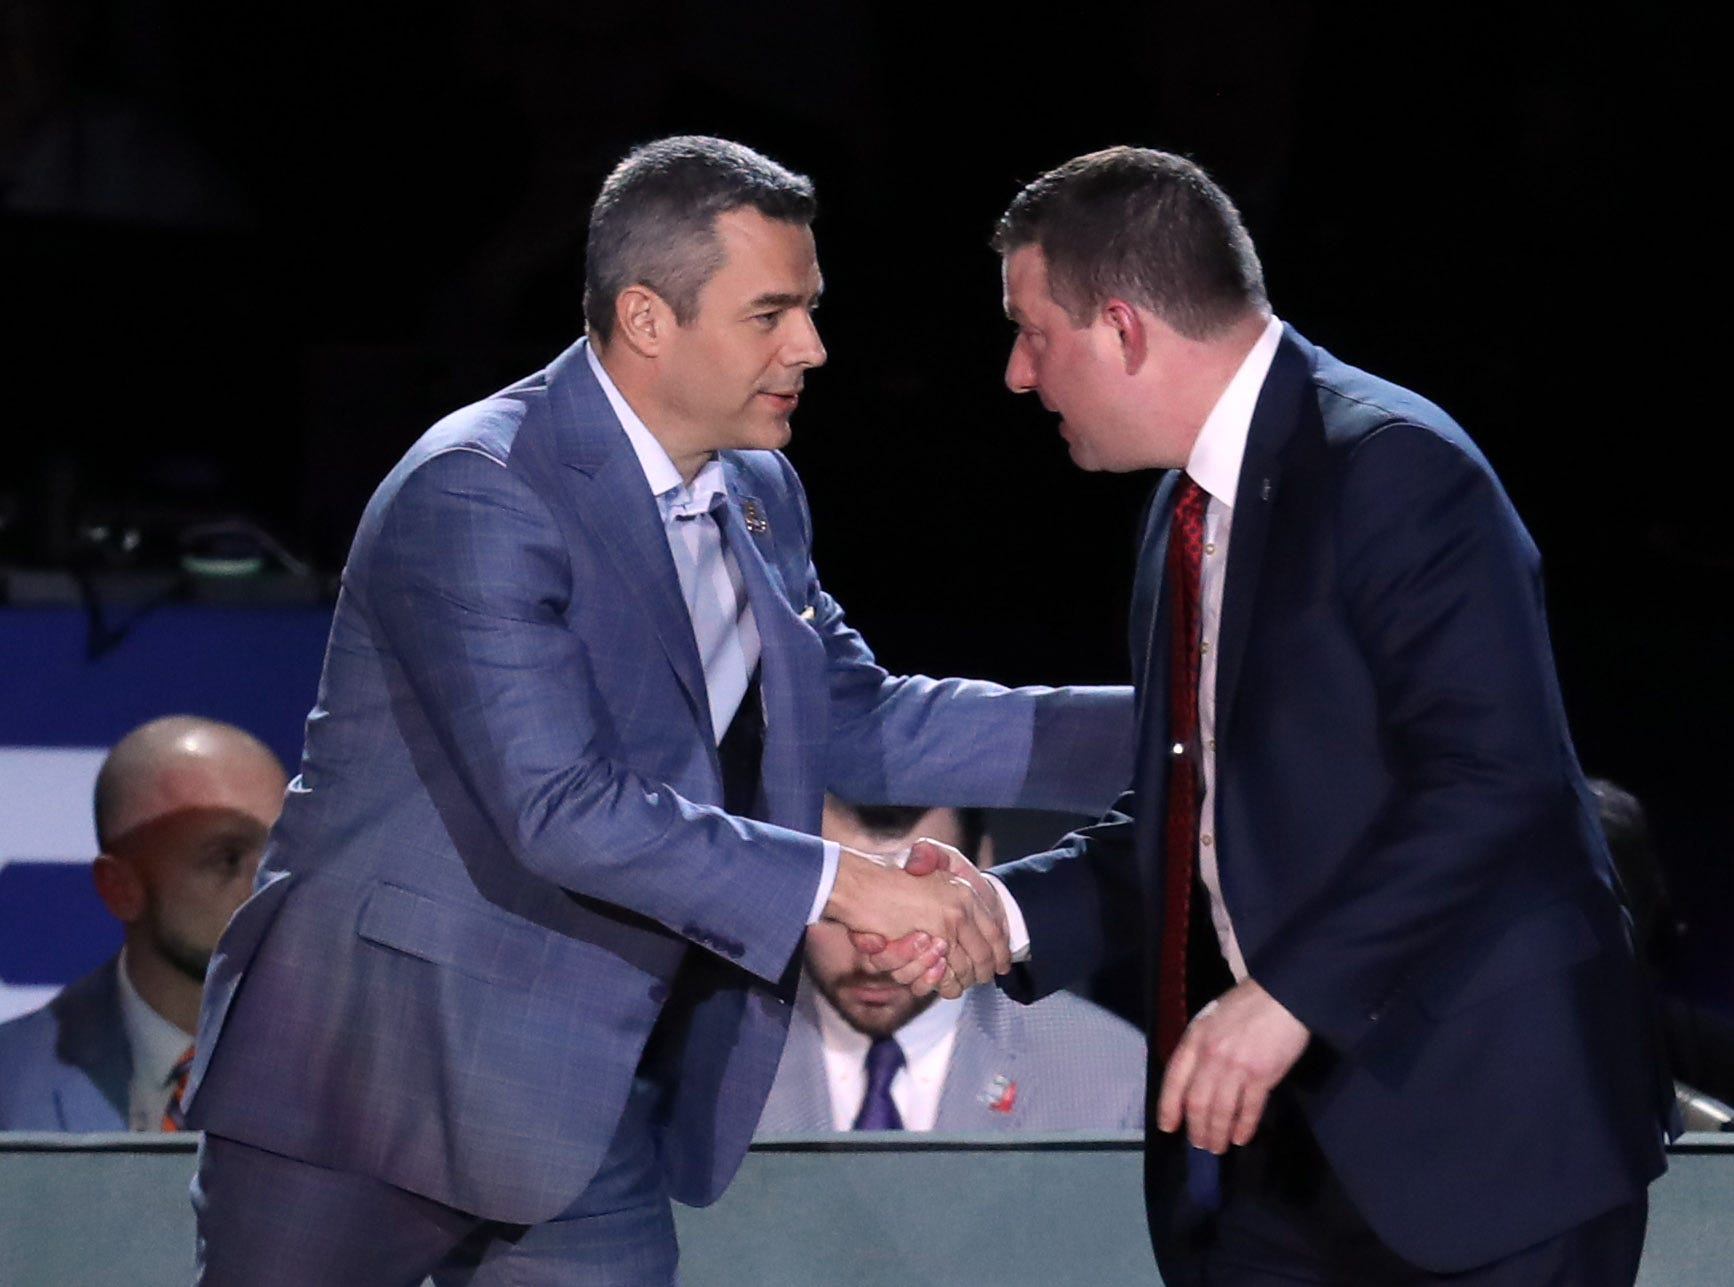 Apr 8, 2019; Minneapolis, MN, USA; Texas Tech Red Raiders head coach Chris Beard and Virginia Cavaliers head coach Tony Bennett shake hands before the championship game of the 2019 men's Final Four at US Bank Stadium. Mandatory Credit: Brace Hemmelgarn-USA TODAY Sports